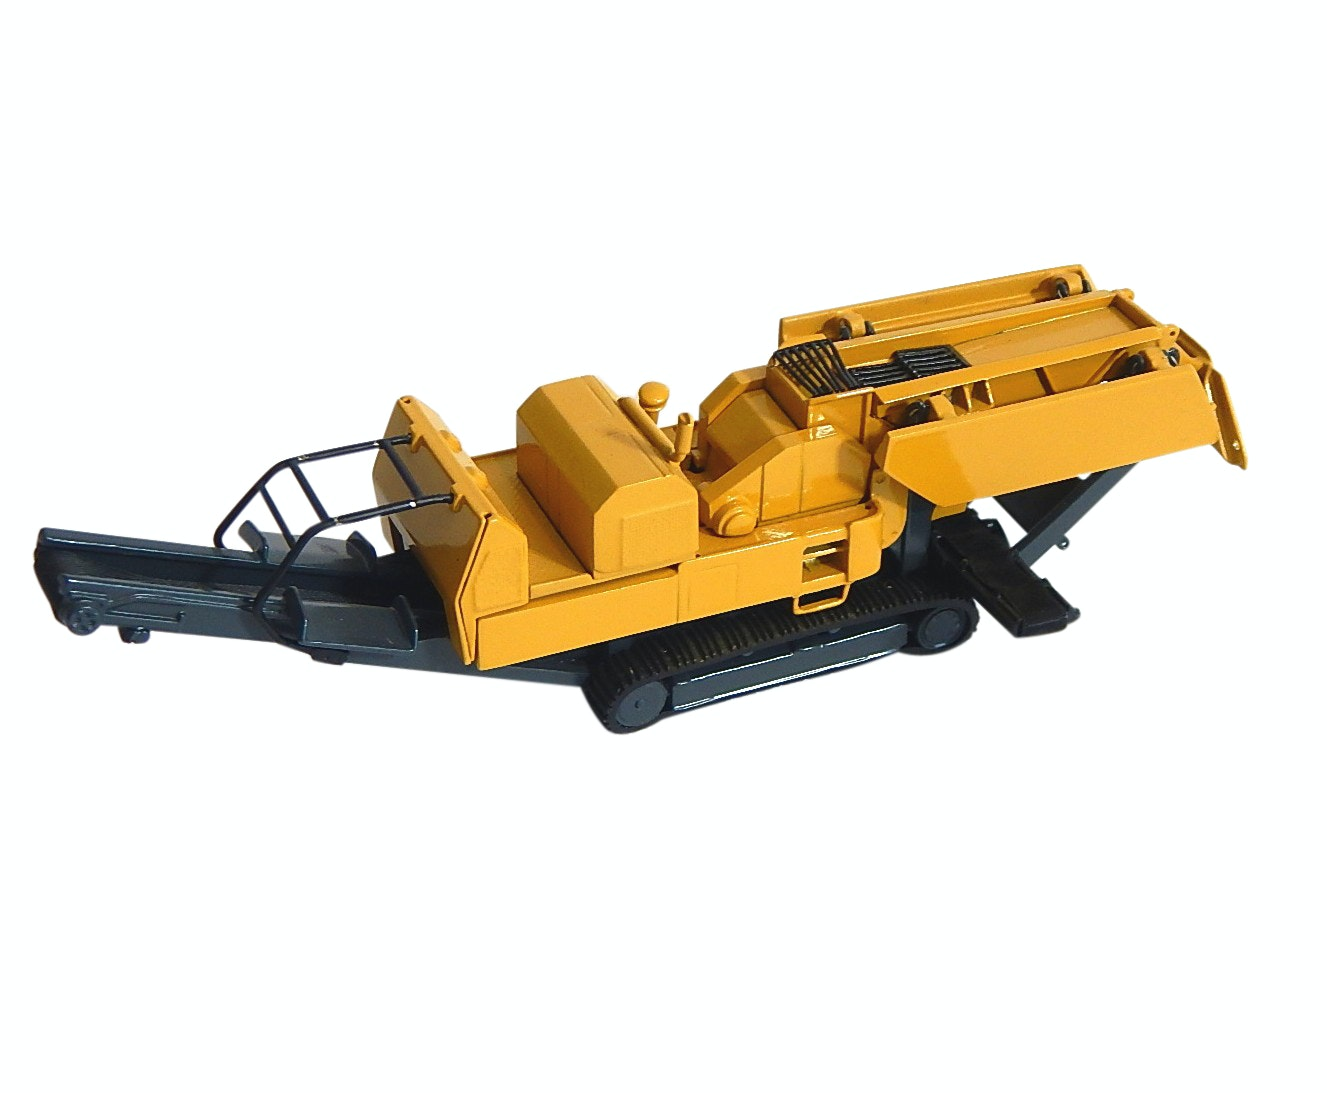 Die Cast 1:50 Scale Road Repair Construction Vehicle - Unmarked